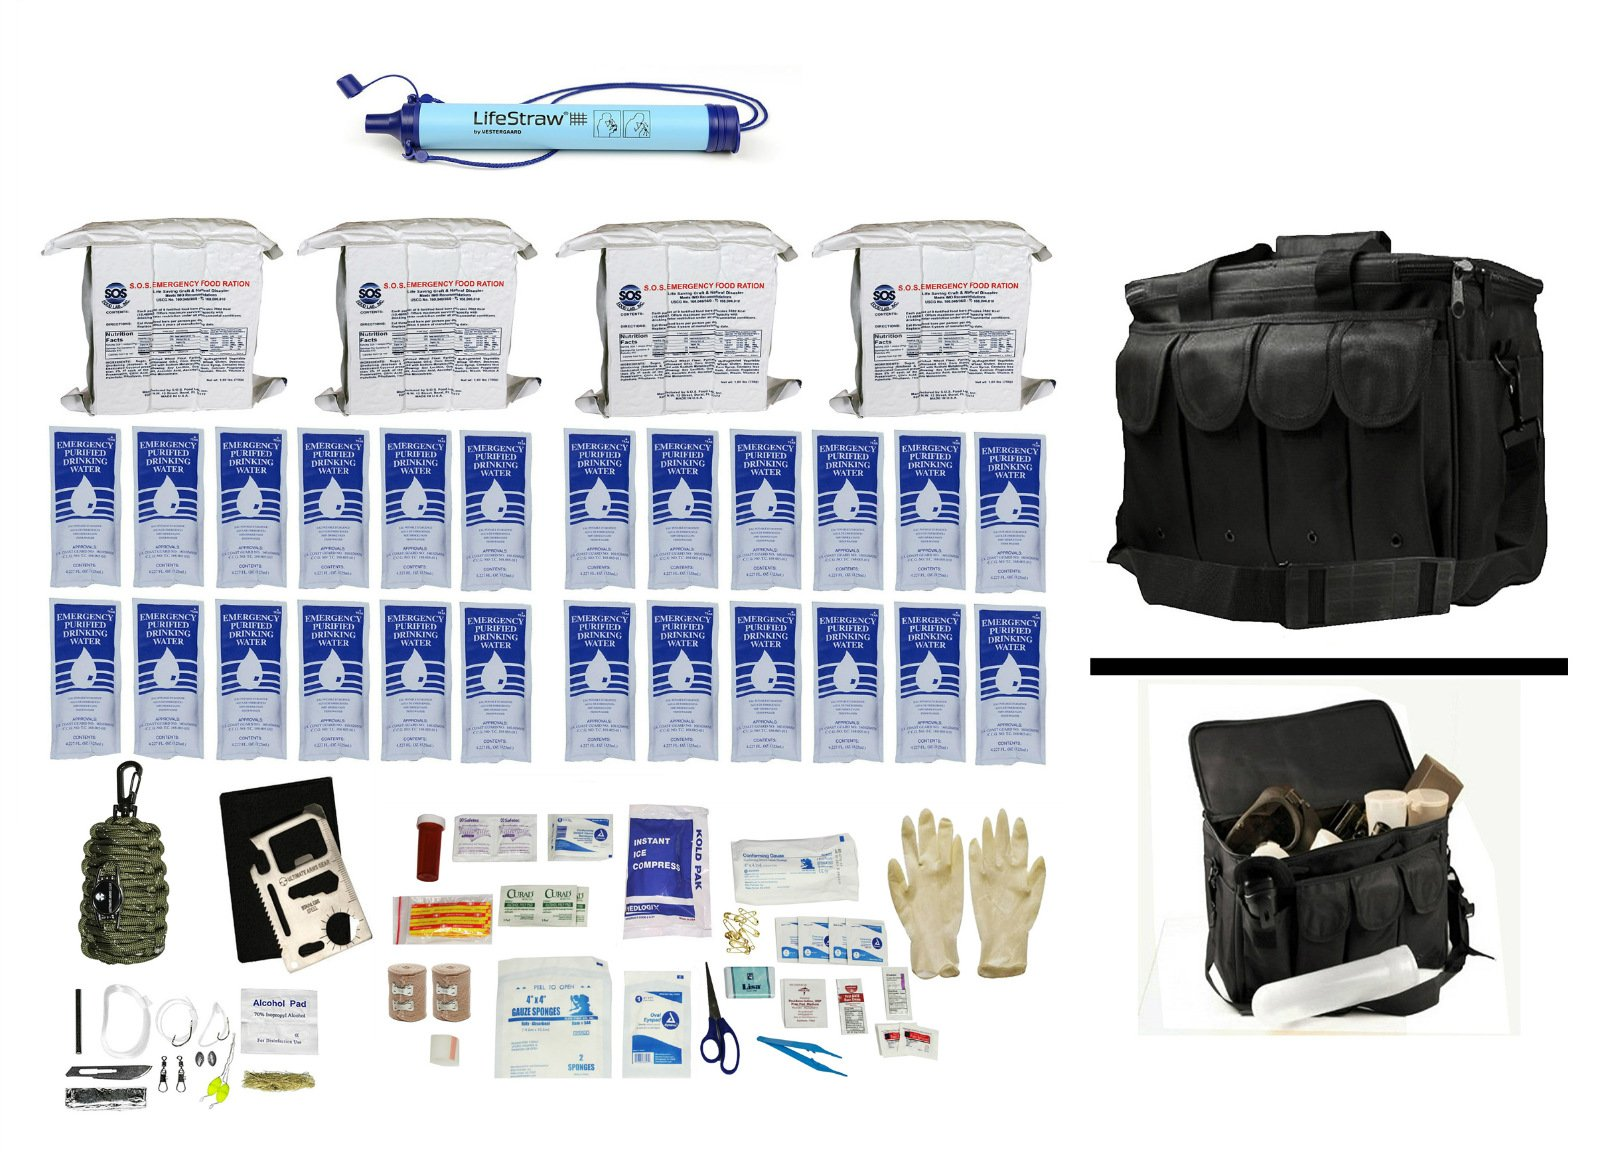 4 Person Supply 3 Day Emergency Bug Out S.O.S. Food Rations, Purified Drinking Water, LifeStraw Personal Filter + Ultimate Arms Gear Duty Gear Bag + Survival First Aid Kit & Multi Tool Set